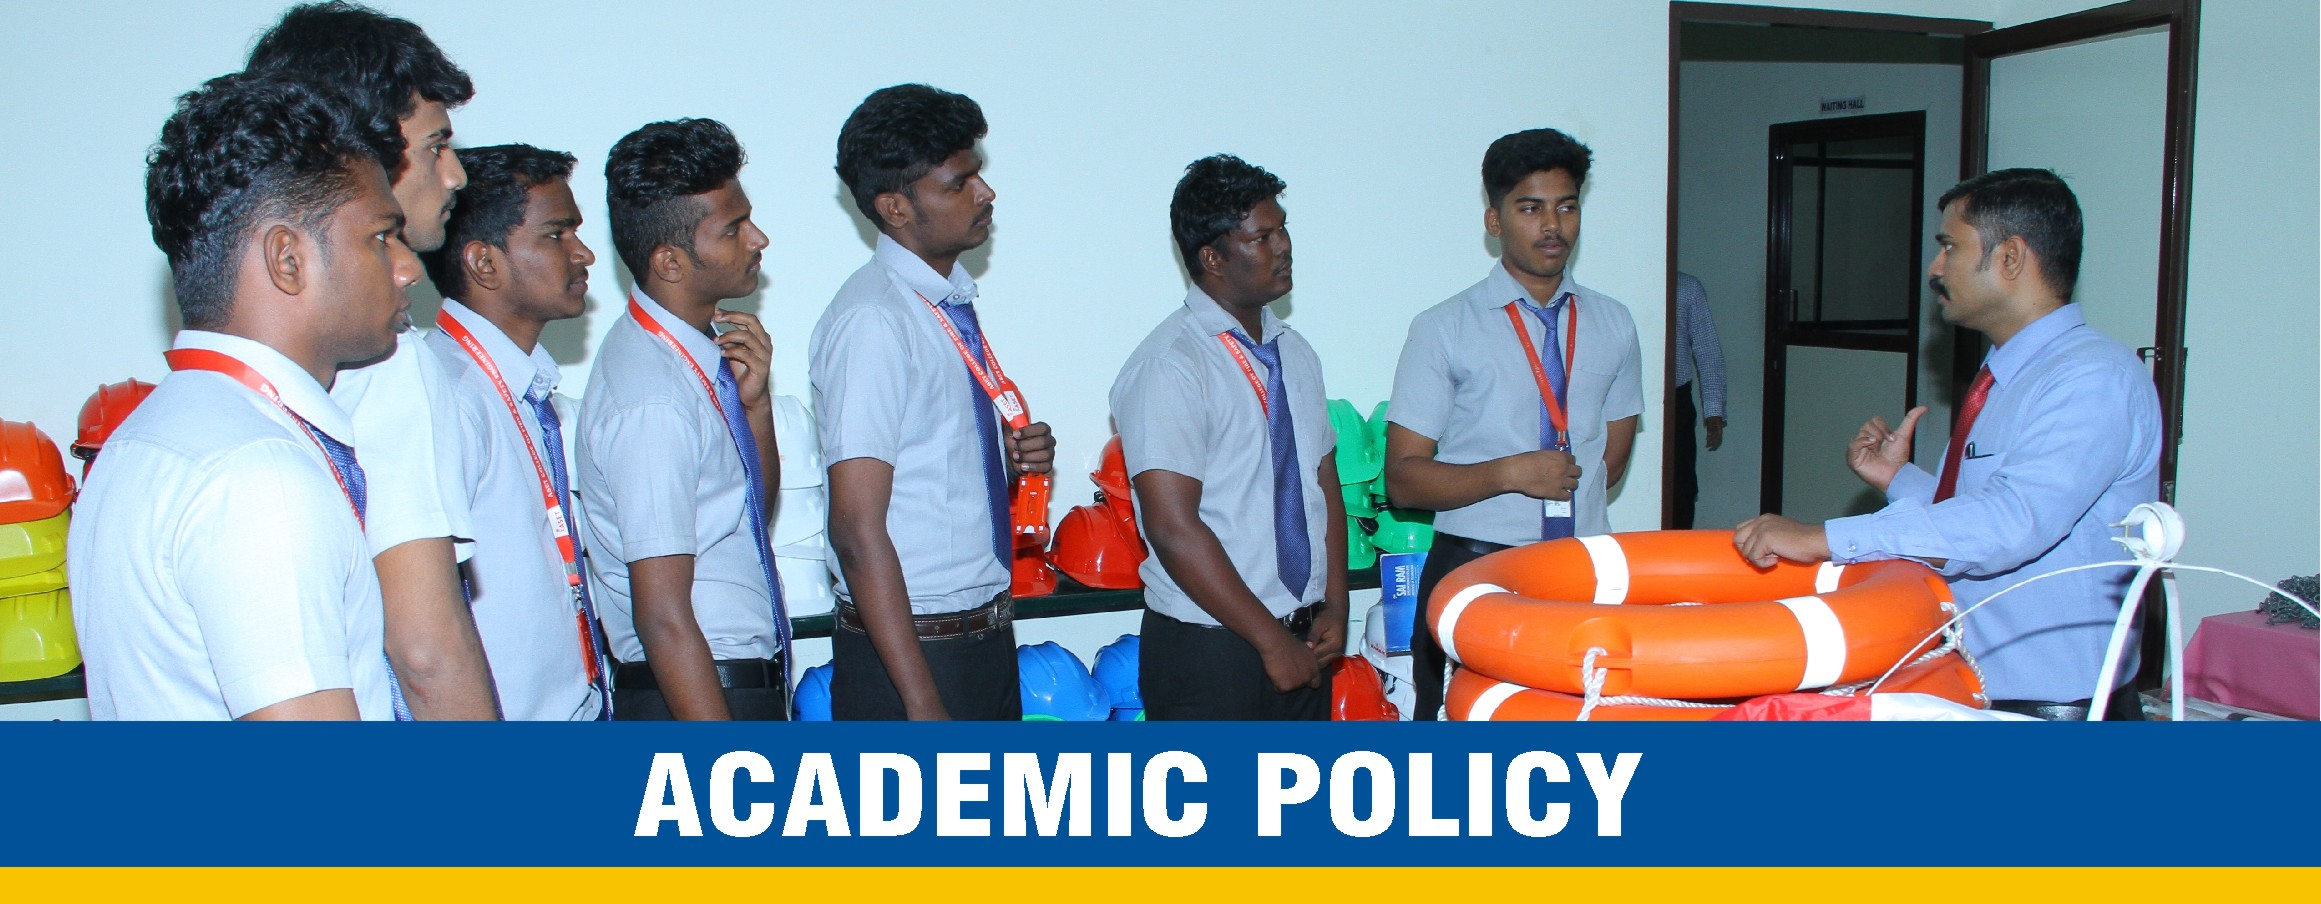 Aset | Academic Policy